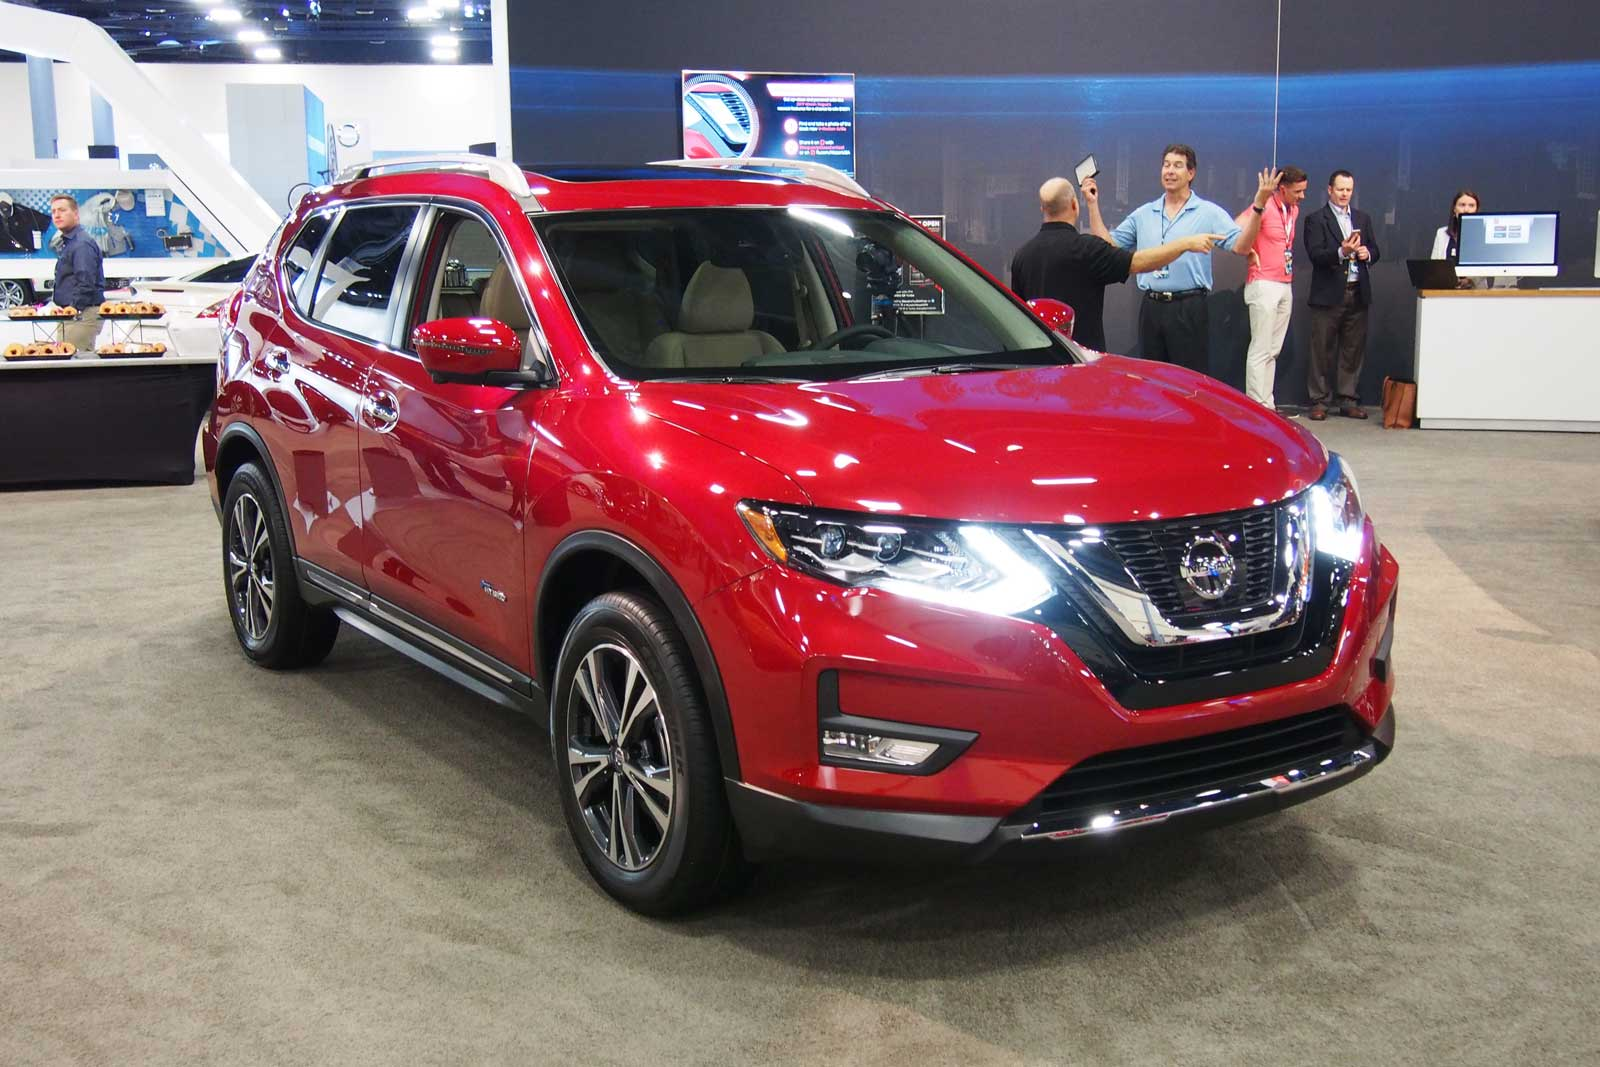 2017 Nissan Rogue Hybrid Live Photo Front 01